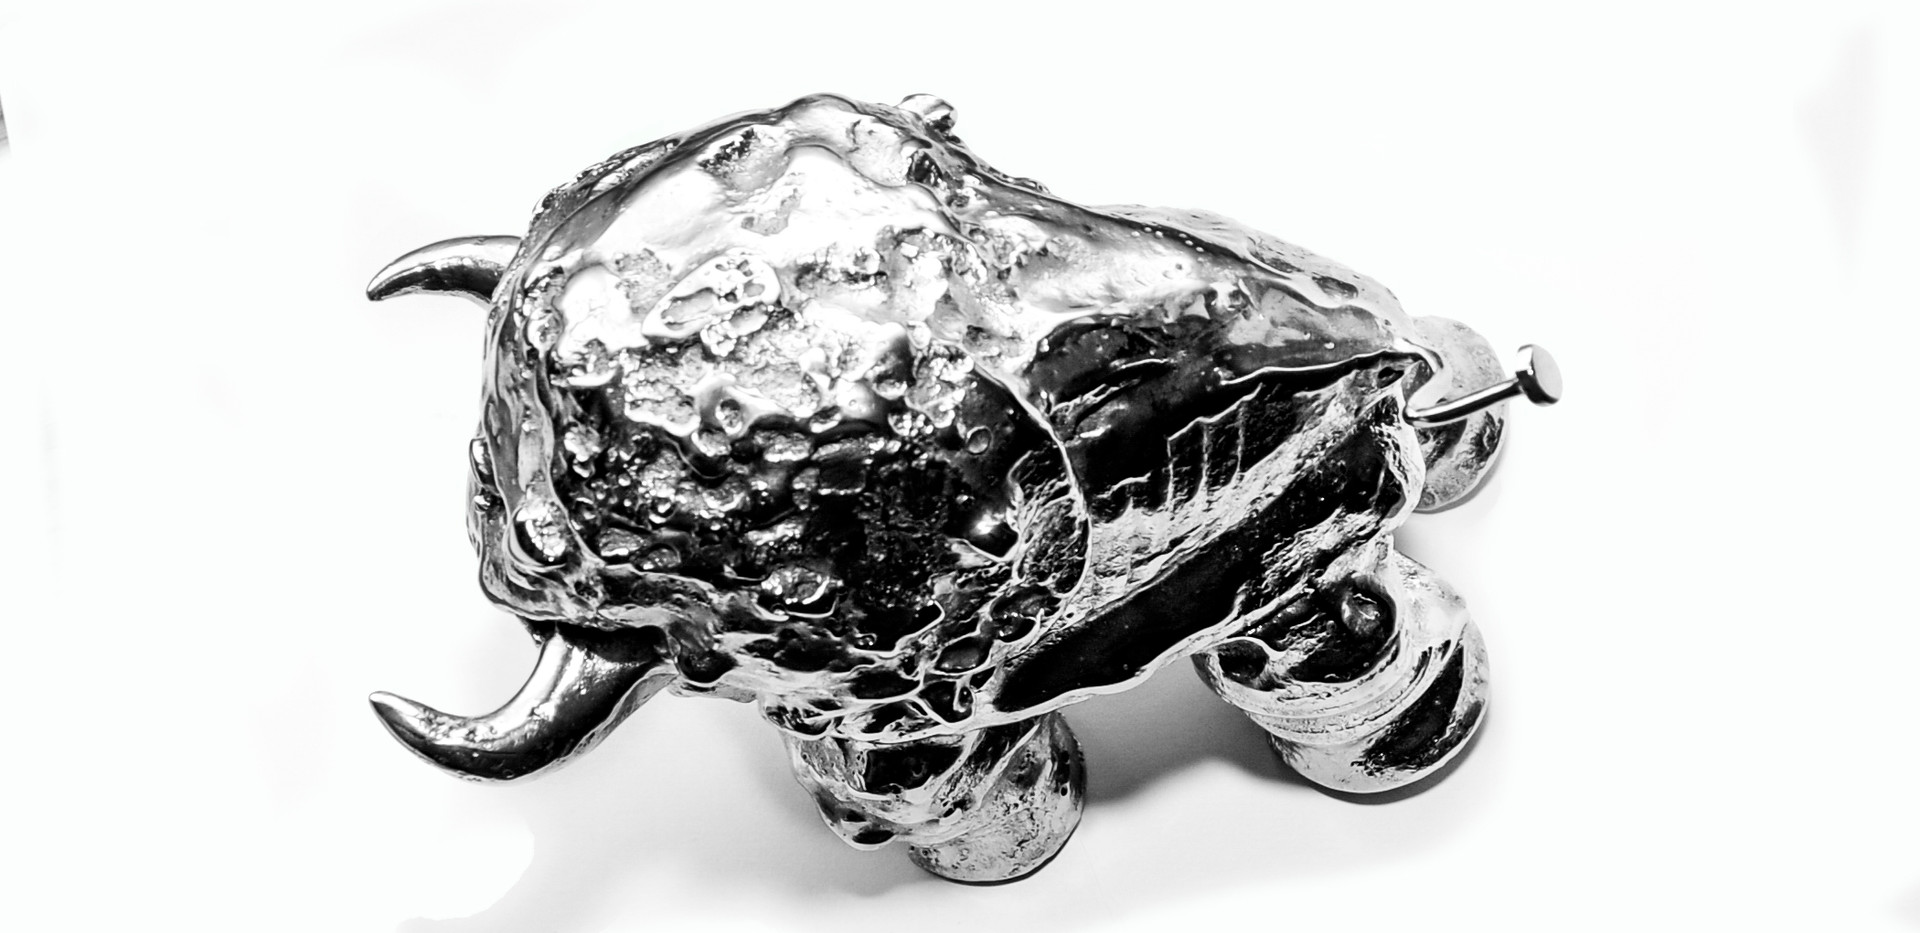 Small Stainless Steel Buffalo  View#8